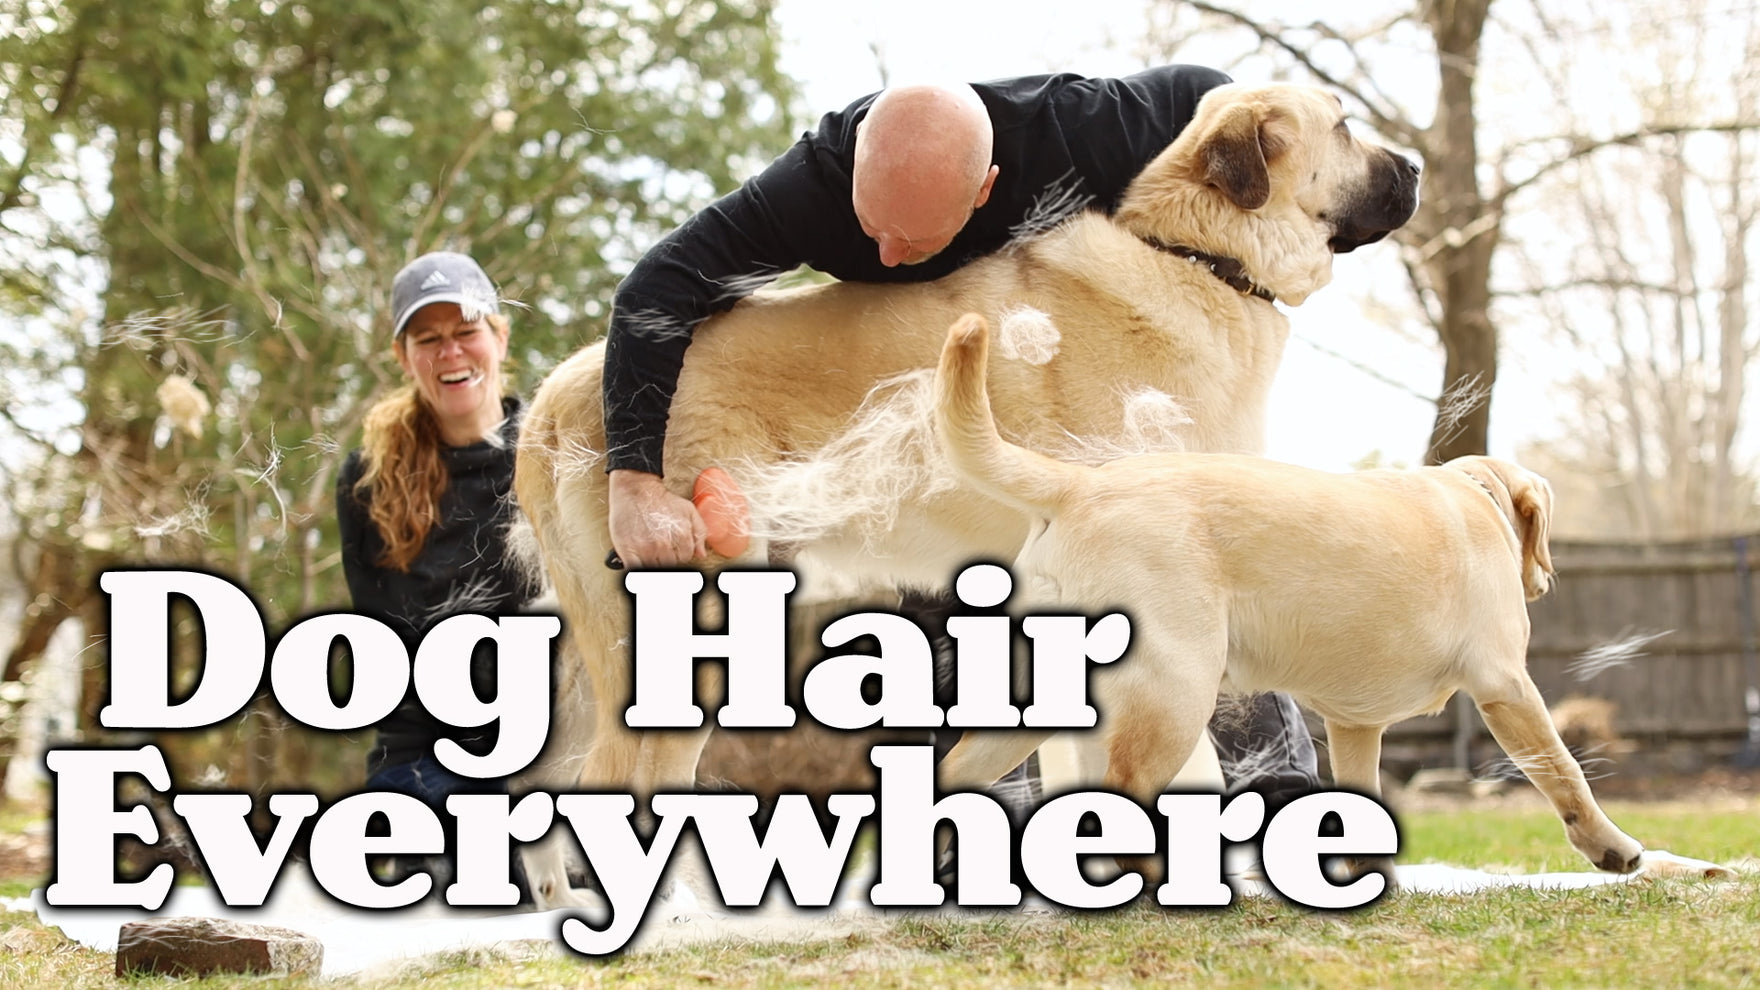 Dog Hair Everywhere, Video on Grooming Dogs, Best Deshedding Tools to Use Brush Dogs, Yellow lab, Anatolian Shepherd Video, Funny Dog Video, Dog Photogrpaher Blog, Dog Blog by Photographer Ron Schmidt